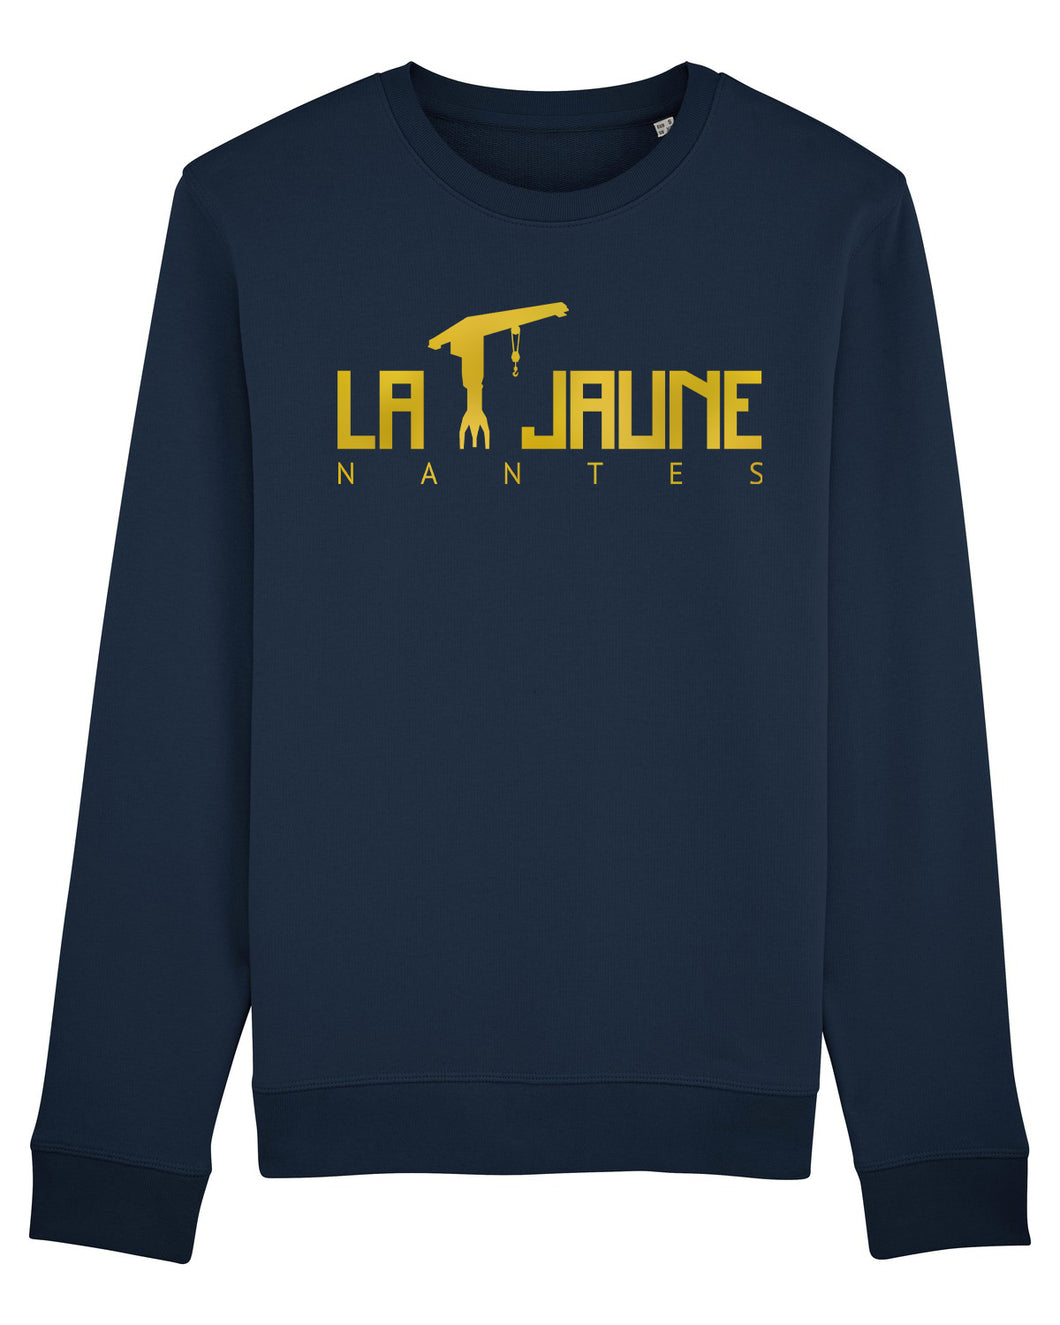 SWEAT Kid La Grue Jaune Paillettes - La Grue Jaune